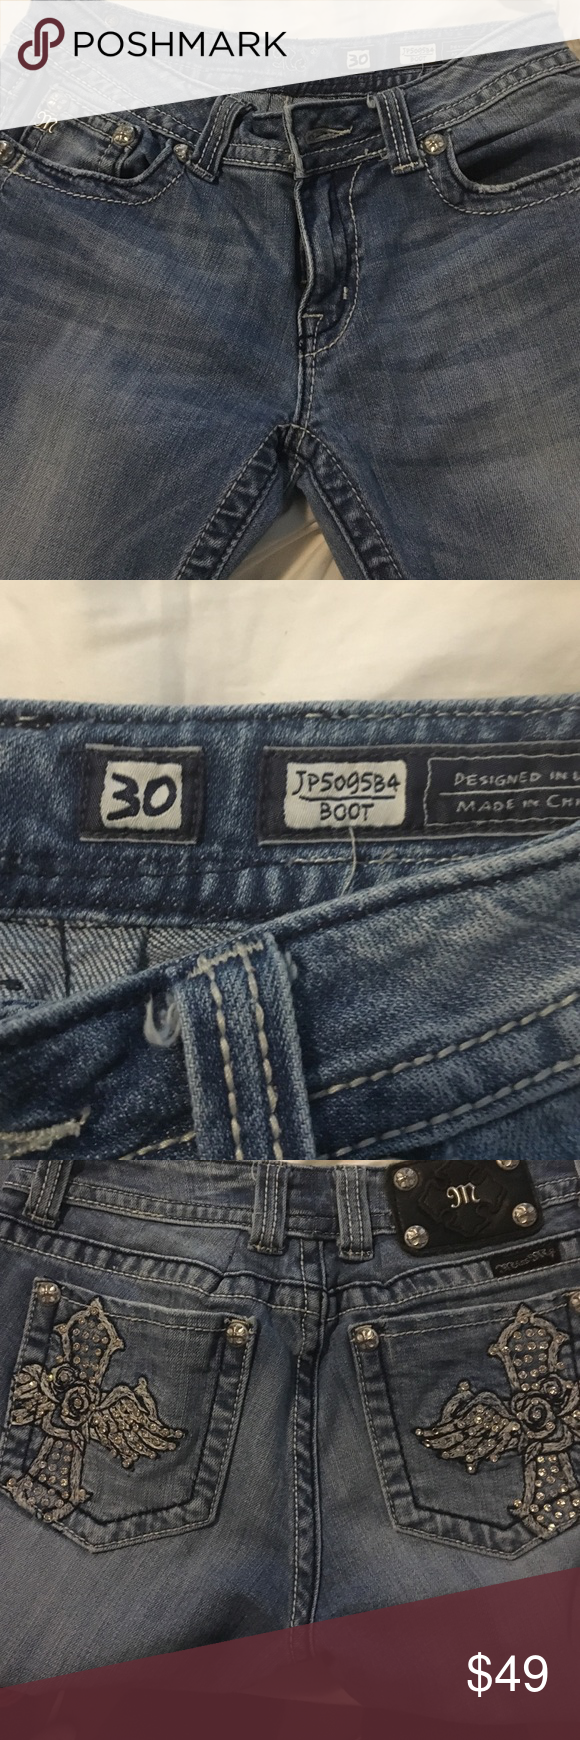 Miss Me Boot Cut Jeans Size 30 Style 5099584 | Stile anni '30 ...